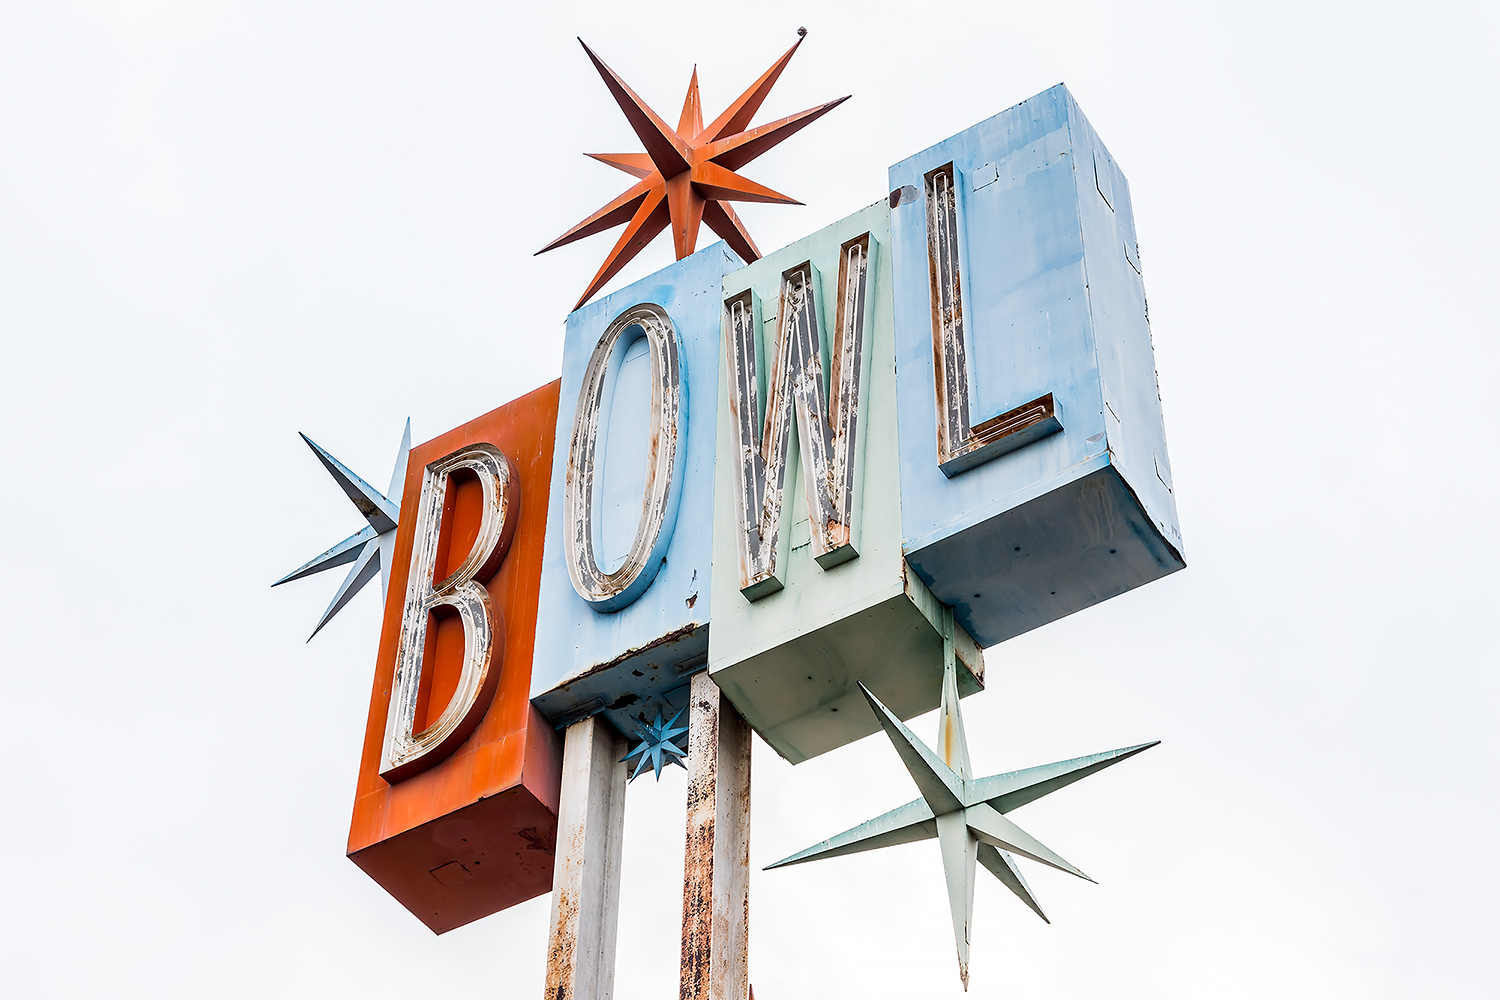 retro-bowling-alley-sign-as-photographed-kelley-king-photography-1.jpg